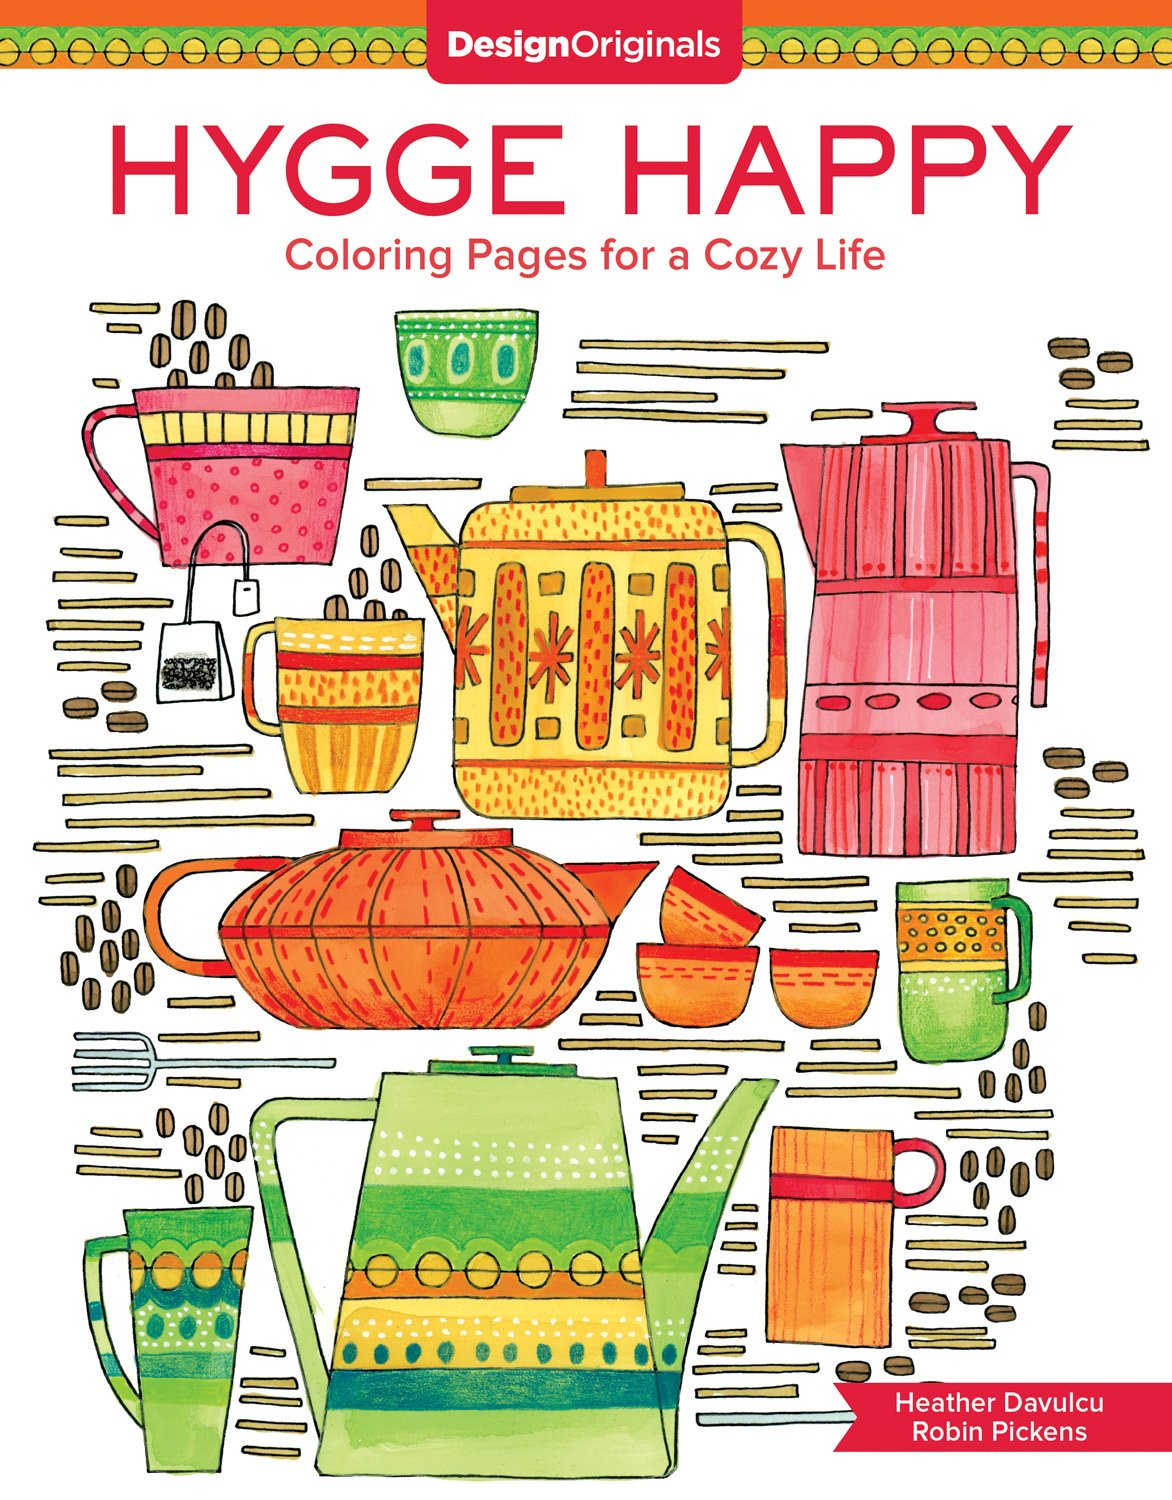 Hygge Happy Coloring Book: Coloring Pages for a Cozy Life (Design Originals) Discover the Scandinavian Secret of Happiness & Enjoy the Good Things in Life with Mellow, Relaxing Hygge Images PDF